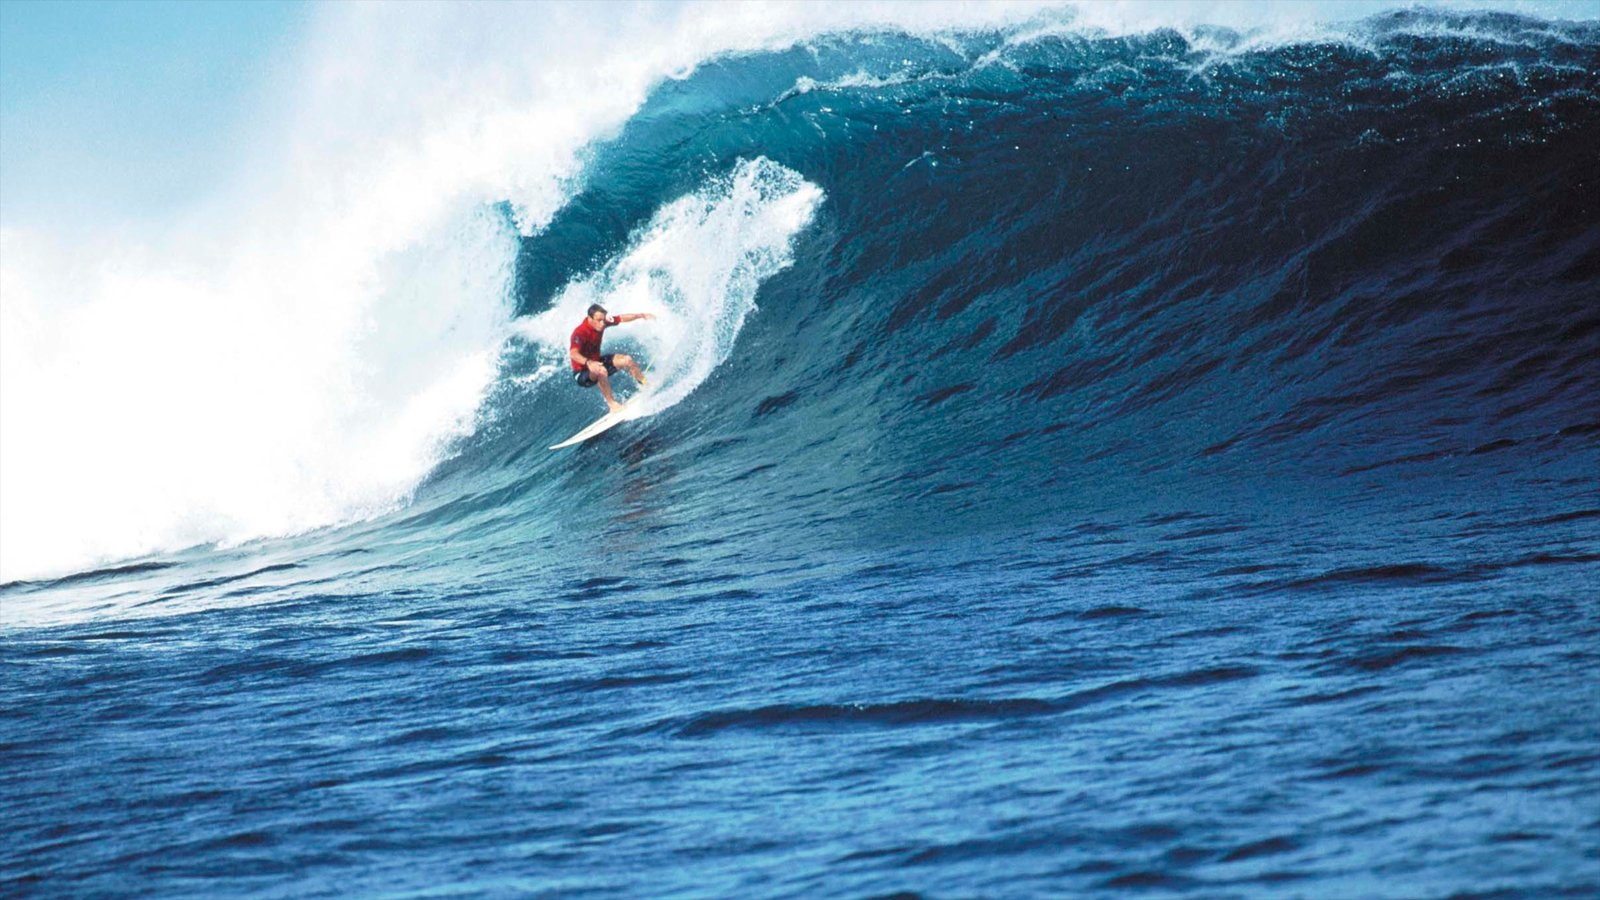 Margaret River Wine Region featuring surfing and waves as well as an individual male